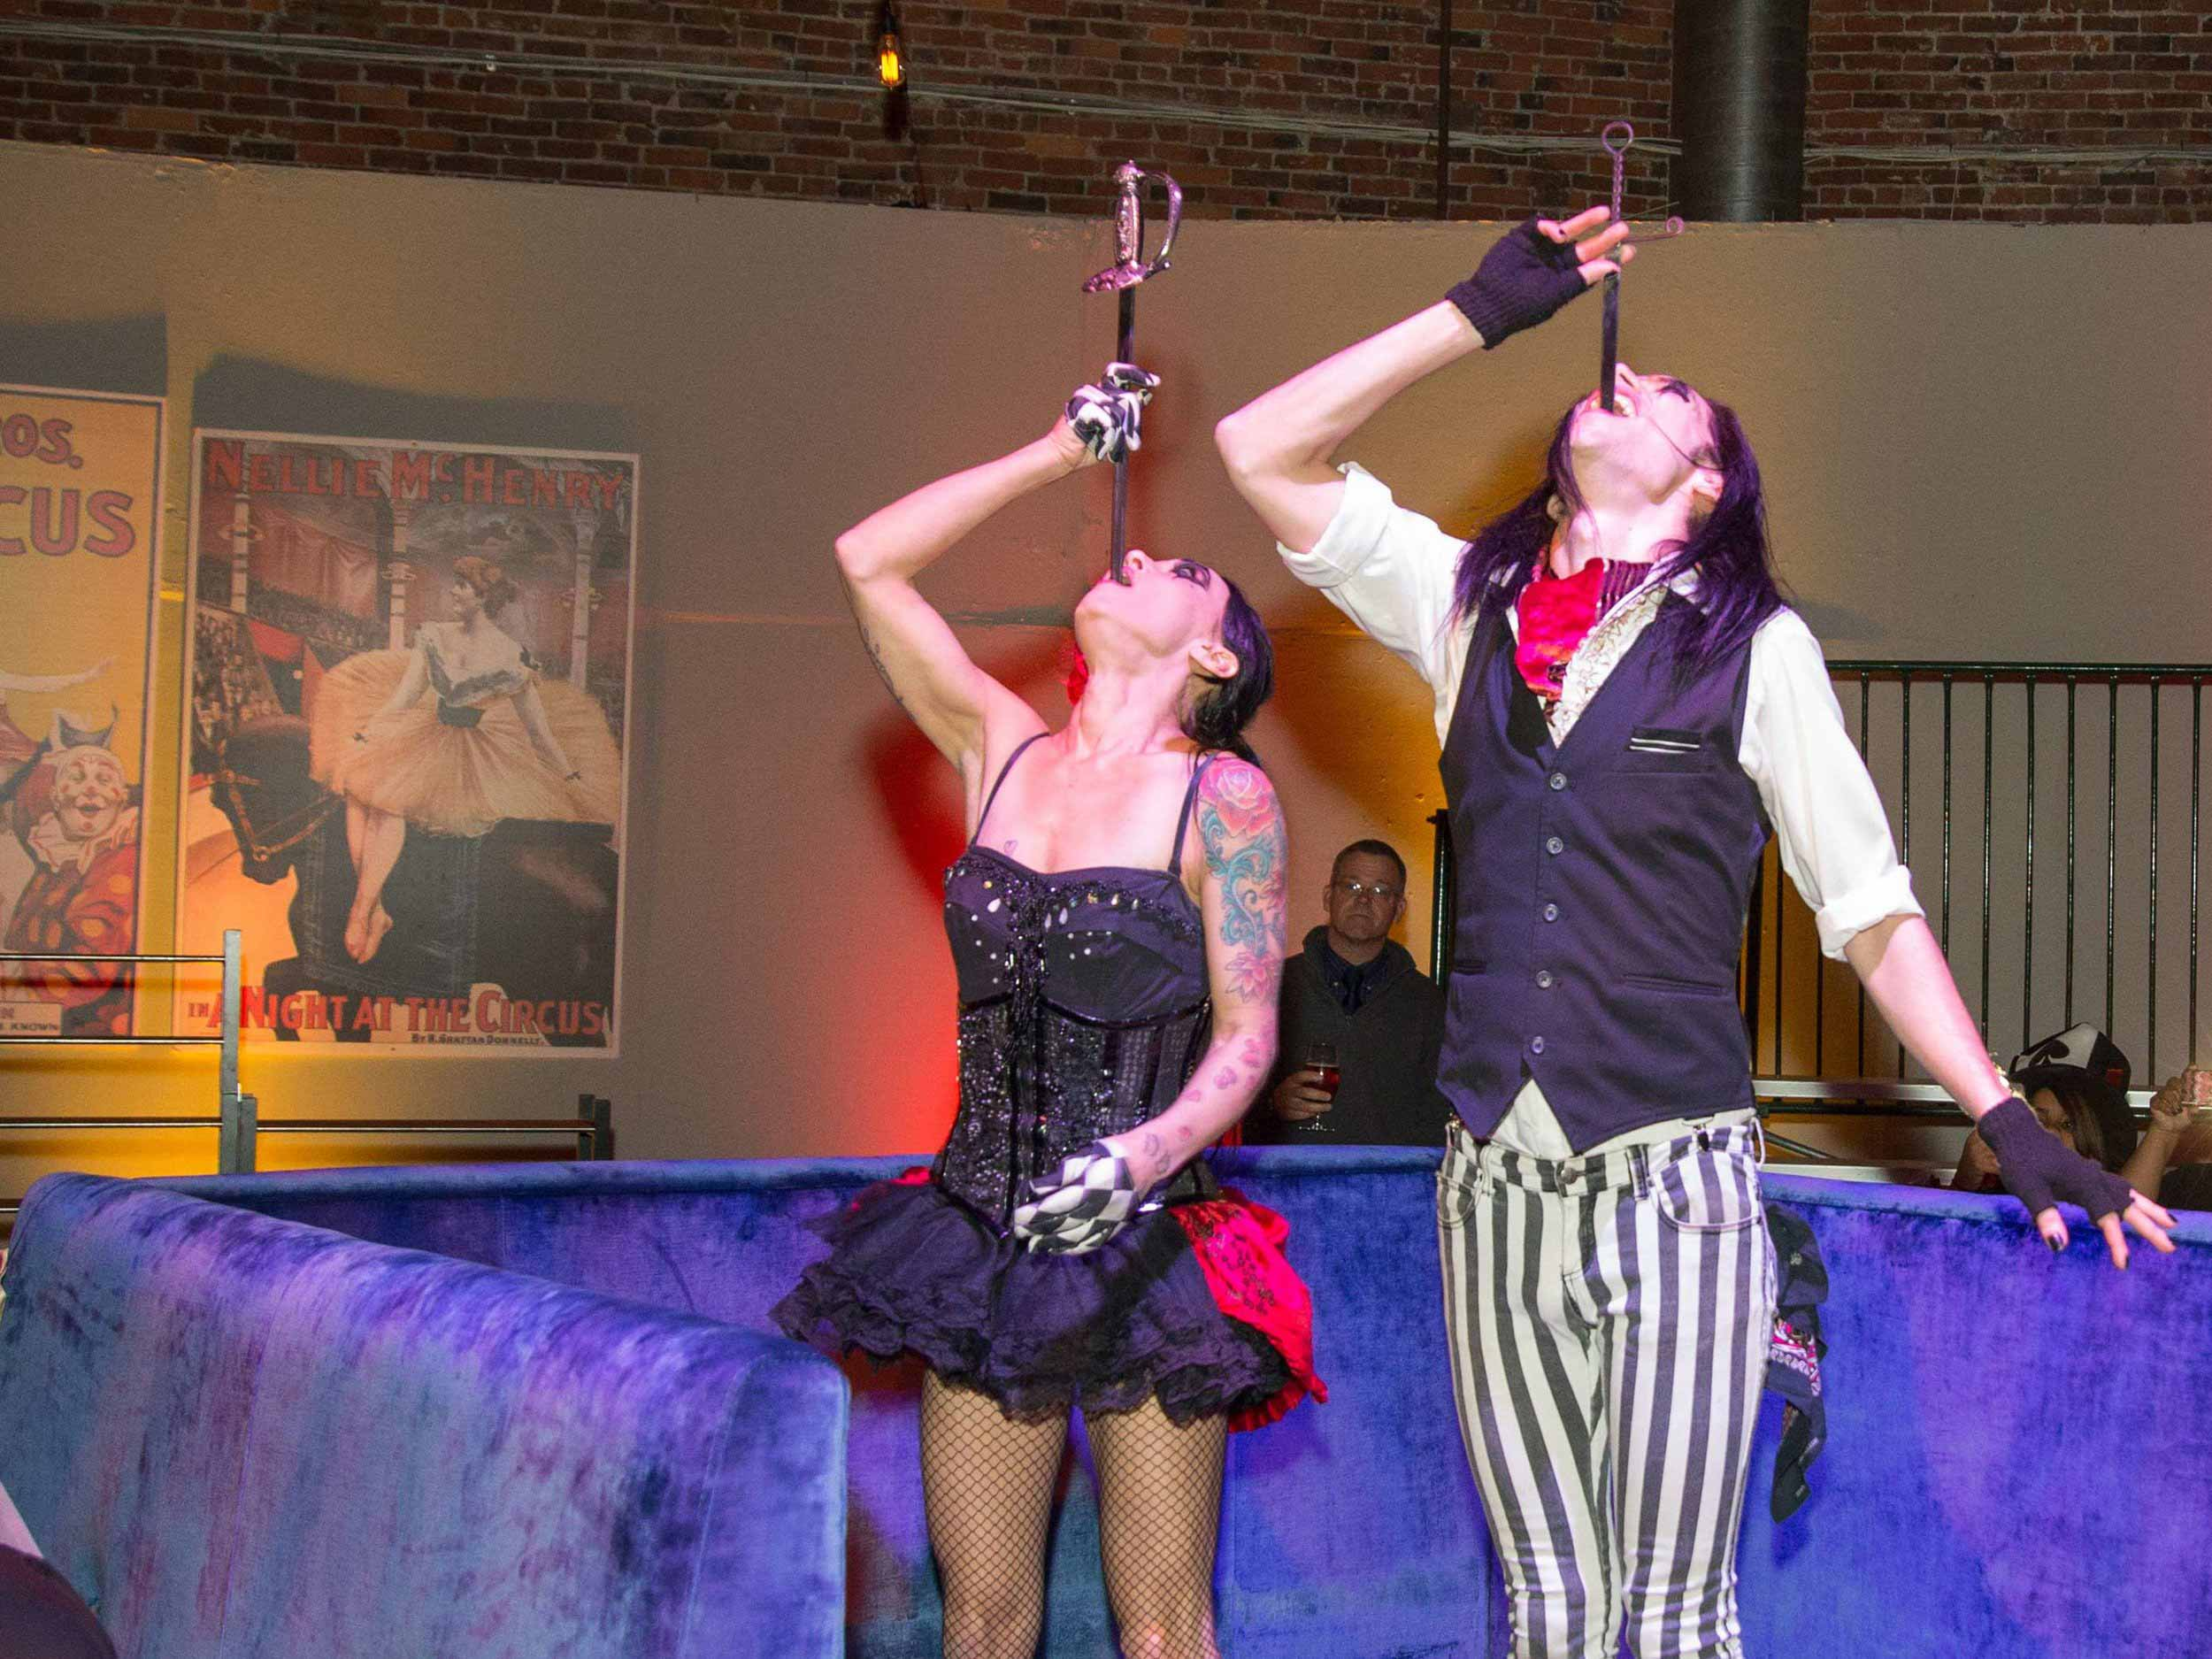 sword-swallowers-at-corporate-circus-party-at-cyclorama-in-boston-ma-with-harrington-events.jpg